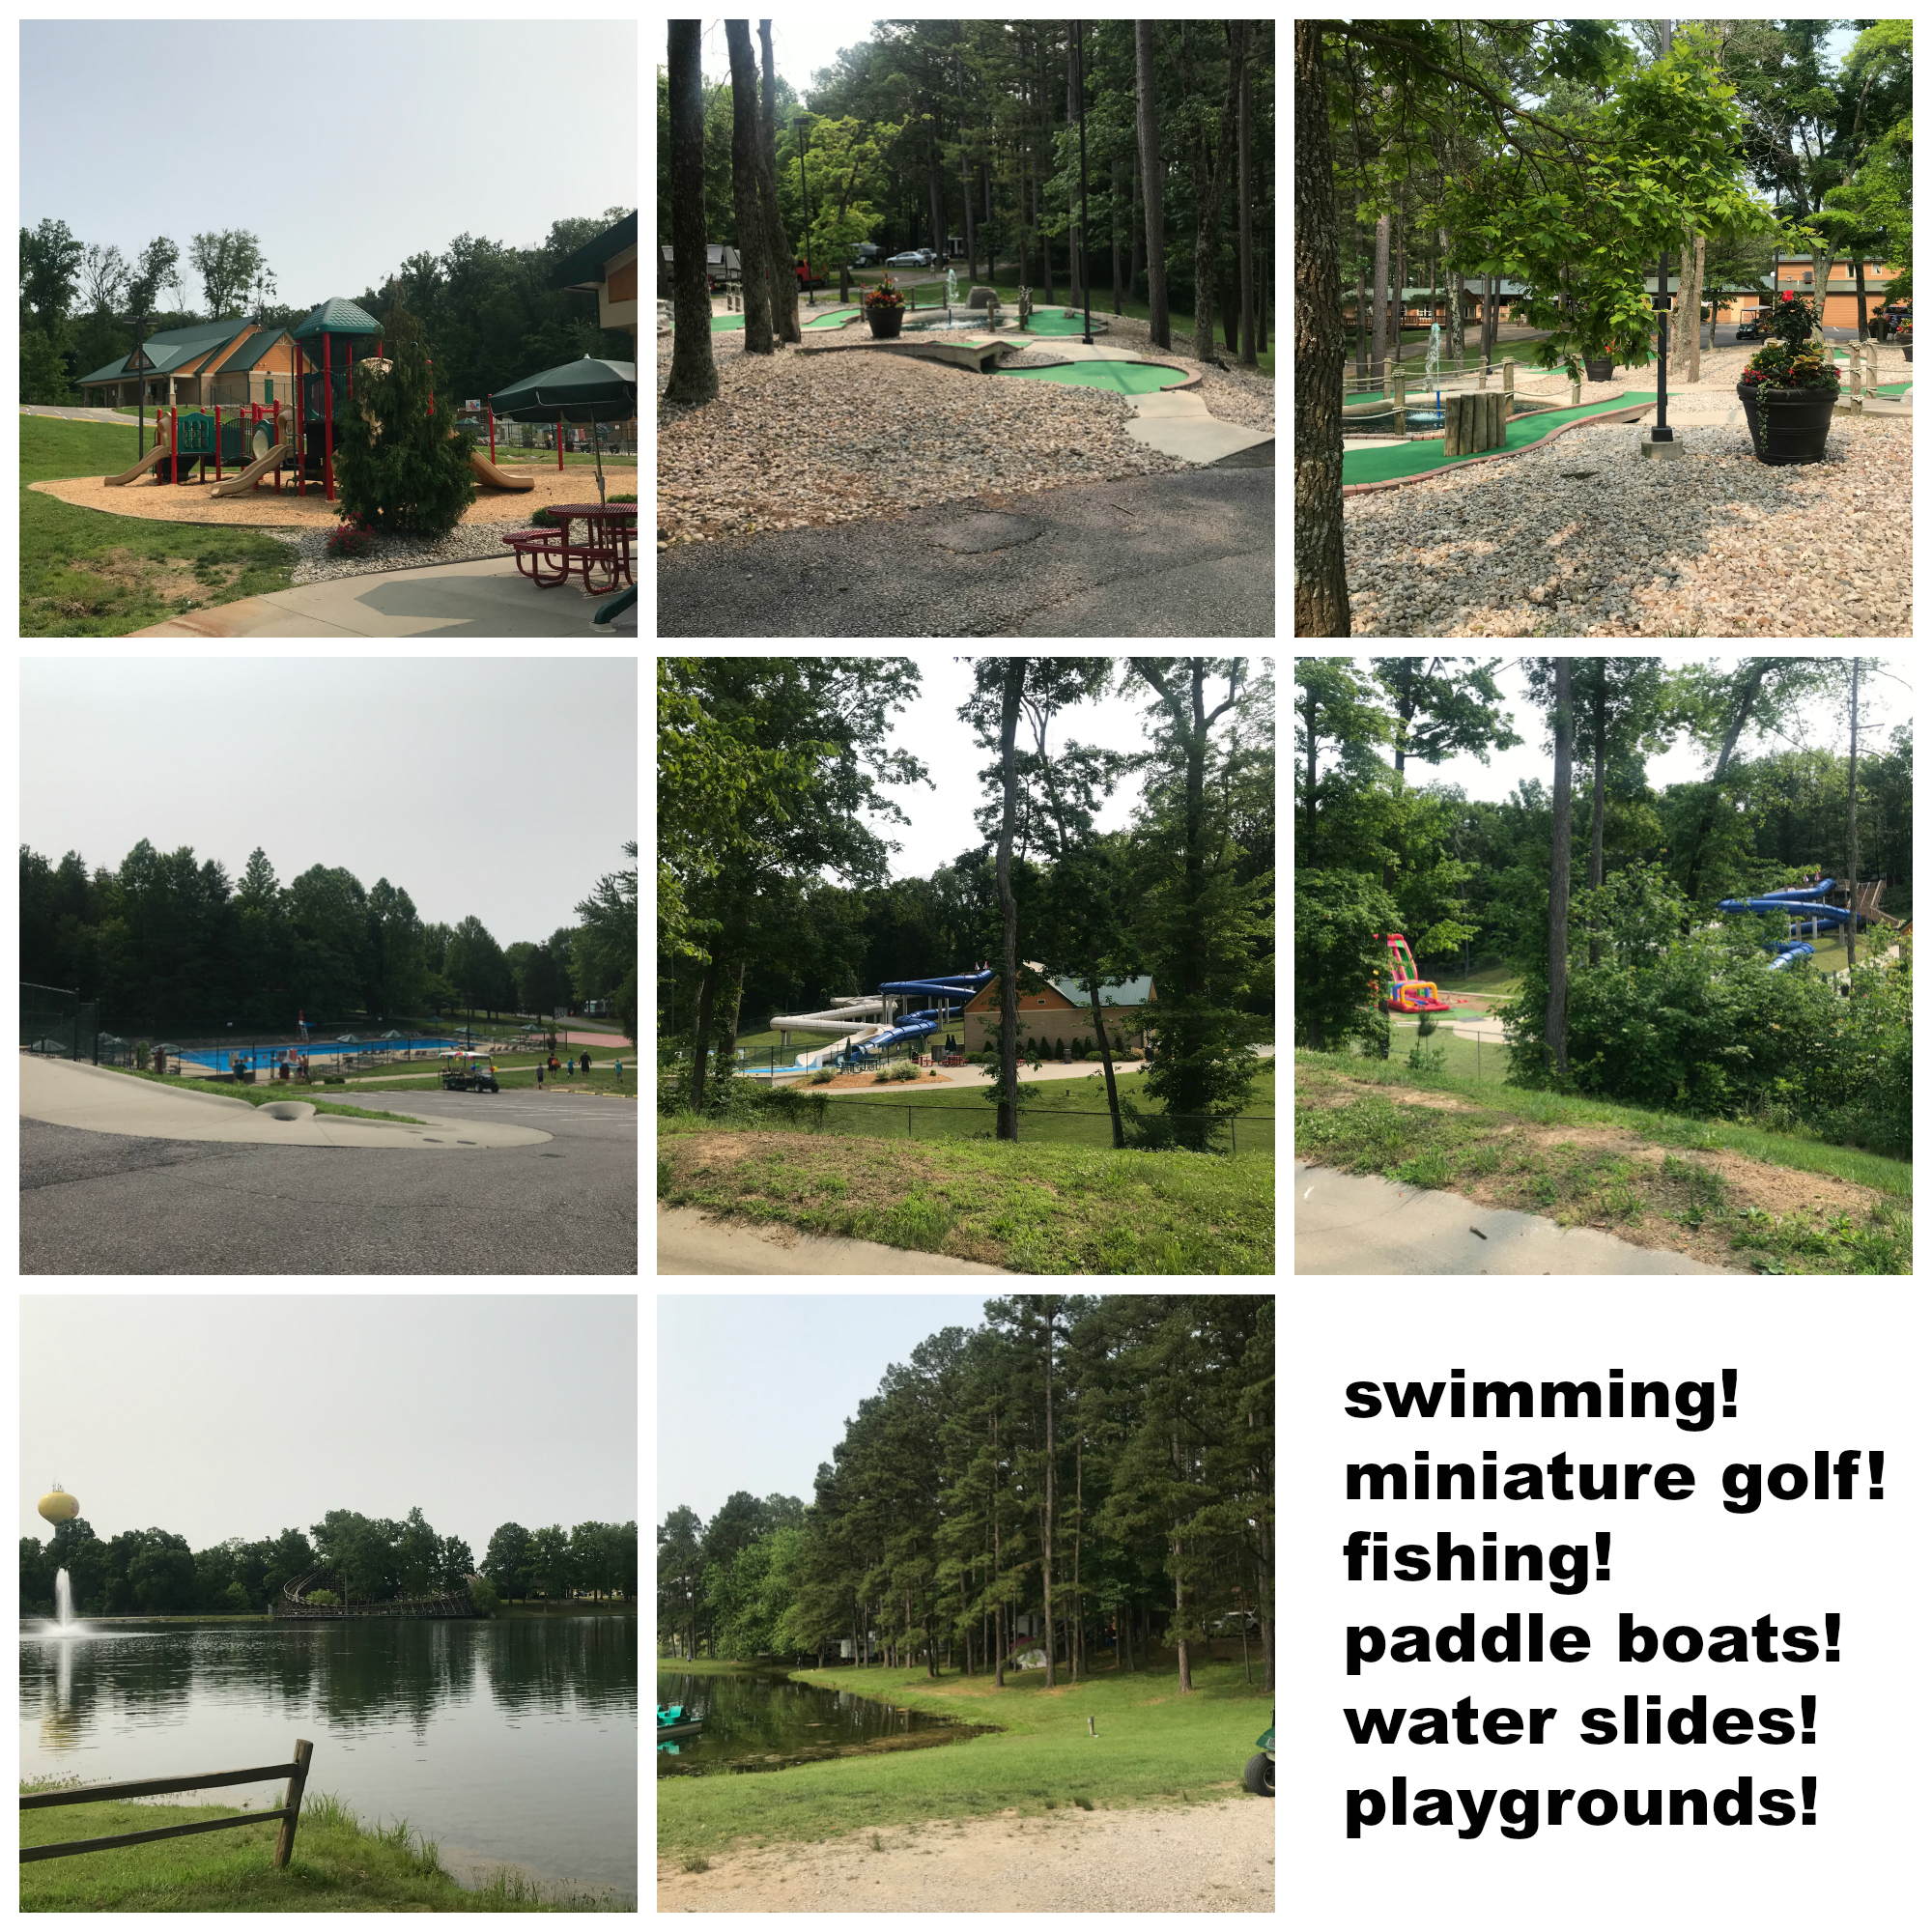 Lake Rudolph activities. Swimming pool, miniature golf, fishing, paddle boats, water slides, and playgrounds.